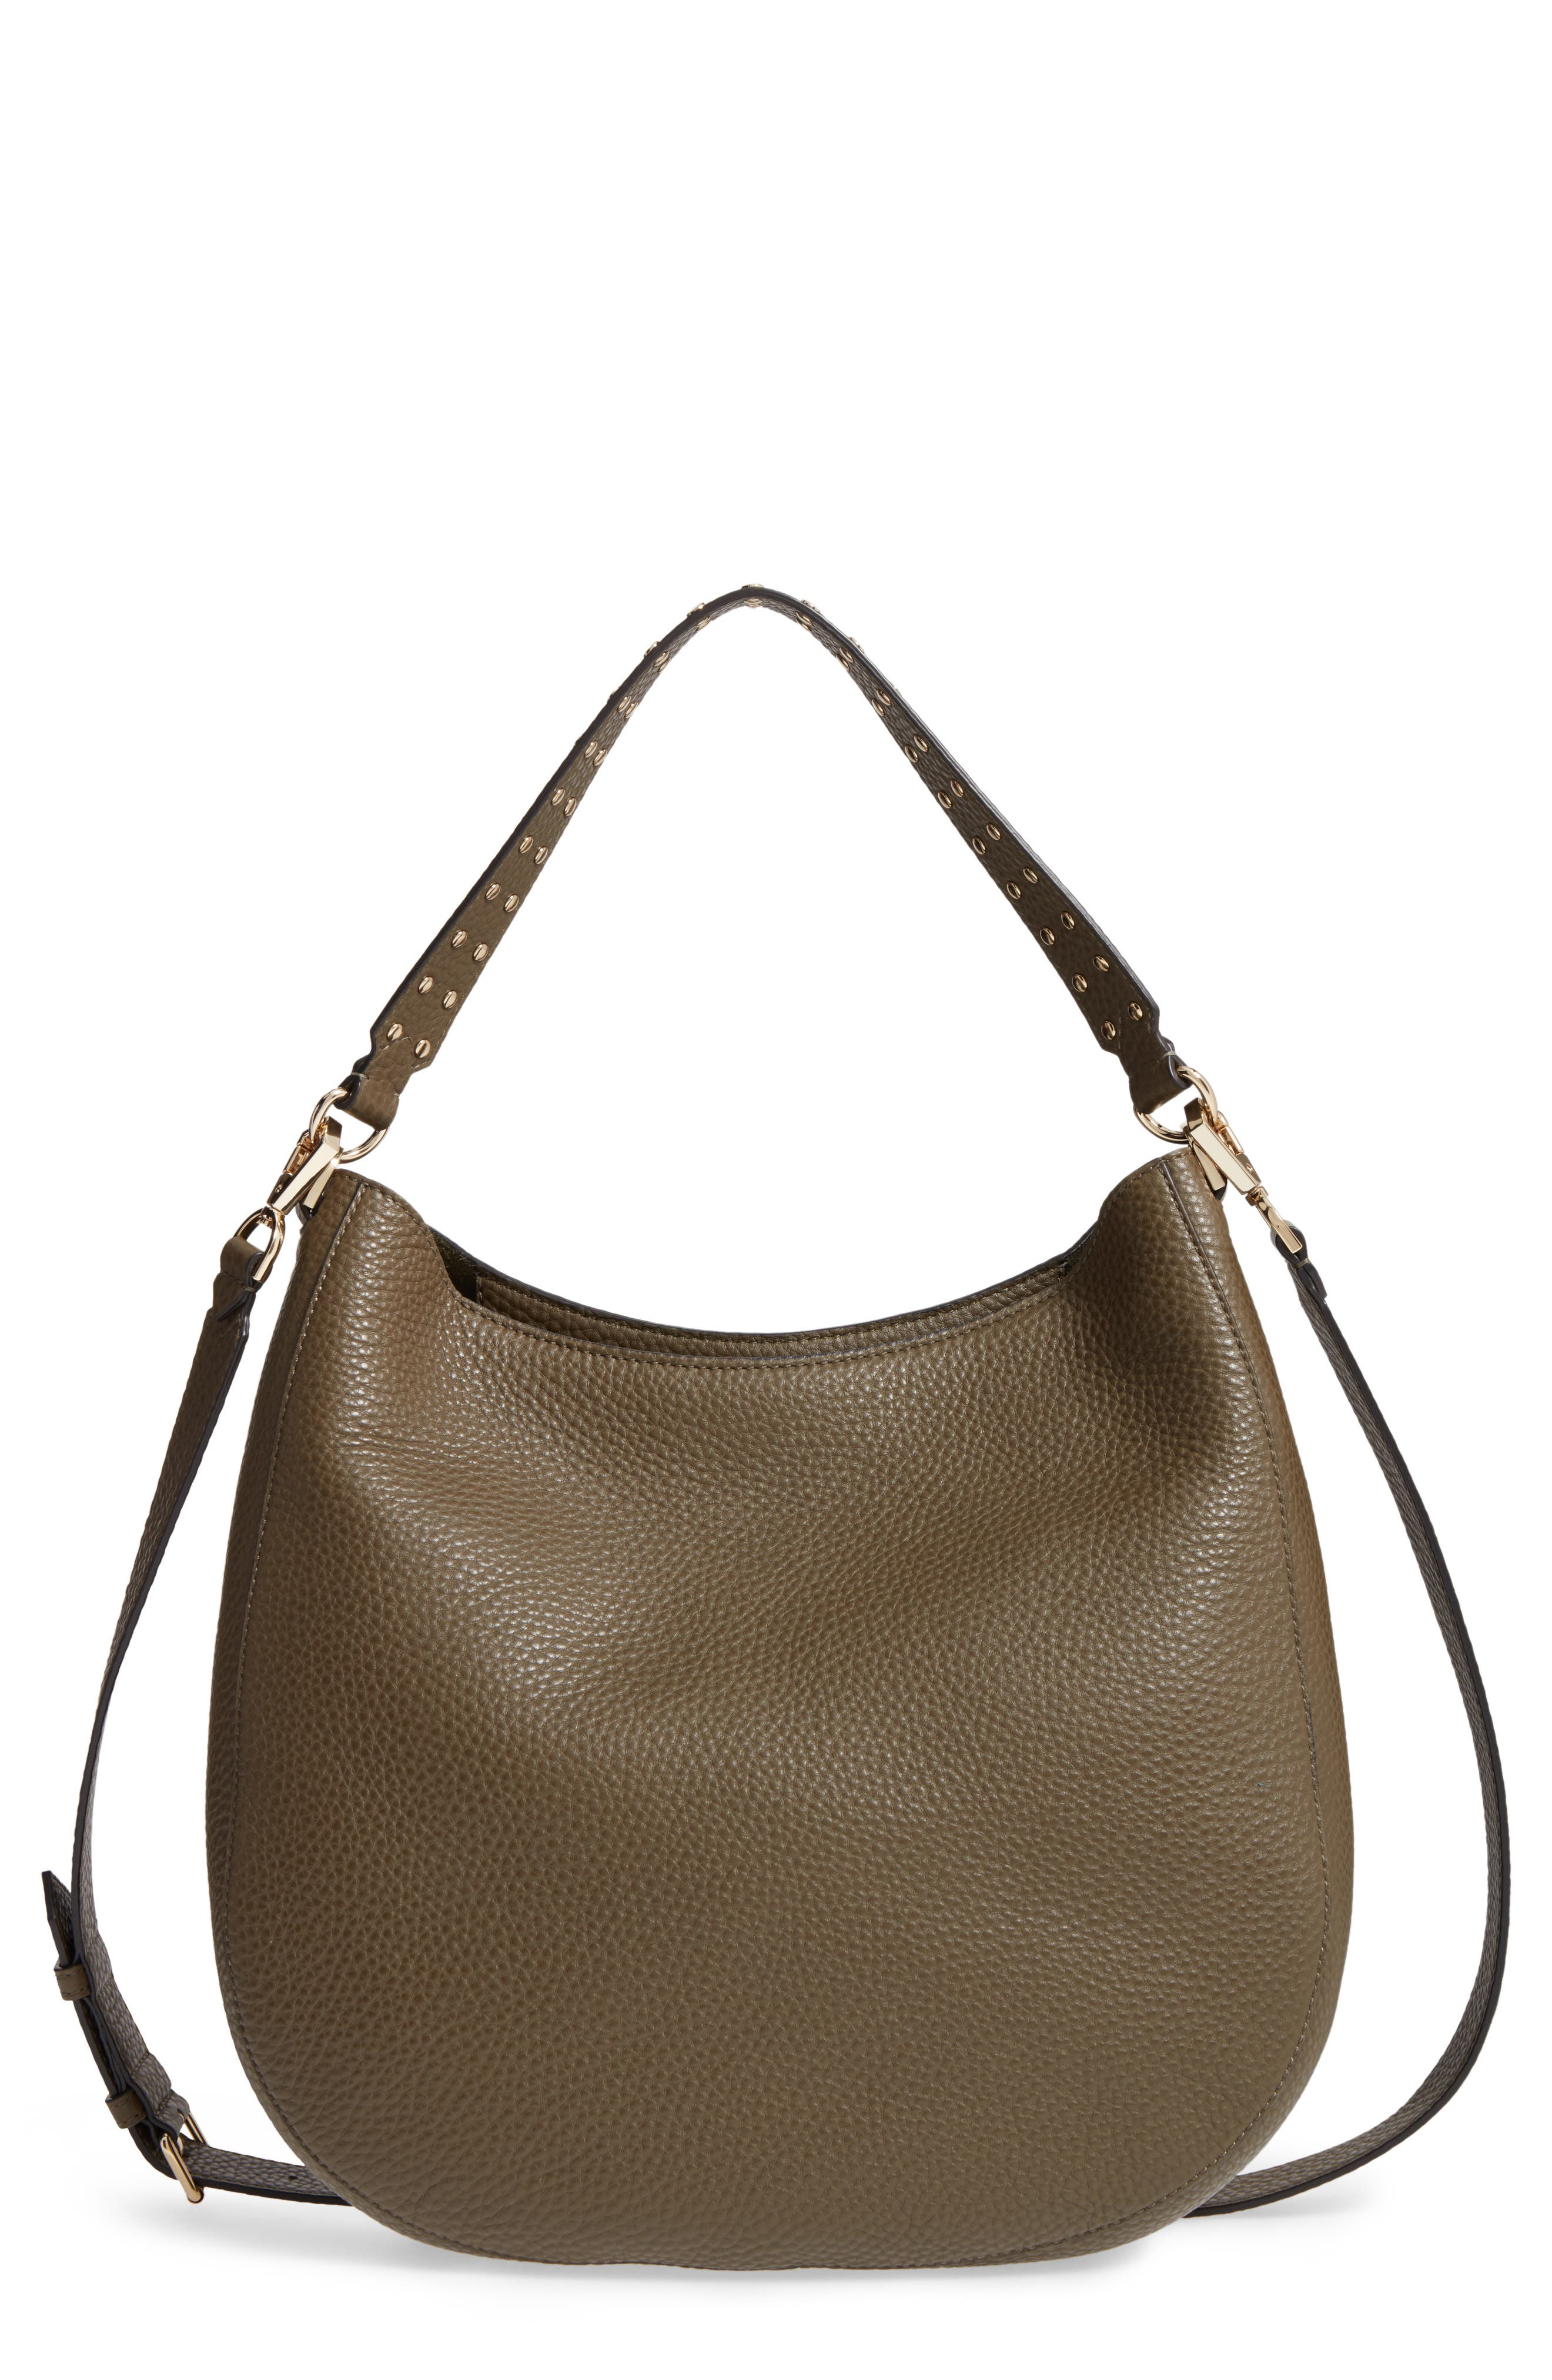 Alternate Image 1 Selected - Rebecca Minkoff Unlined Convertible Leather Hobo (Nordstrom Exclusive)